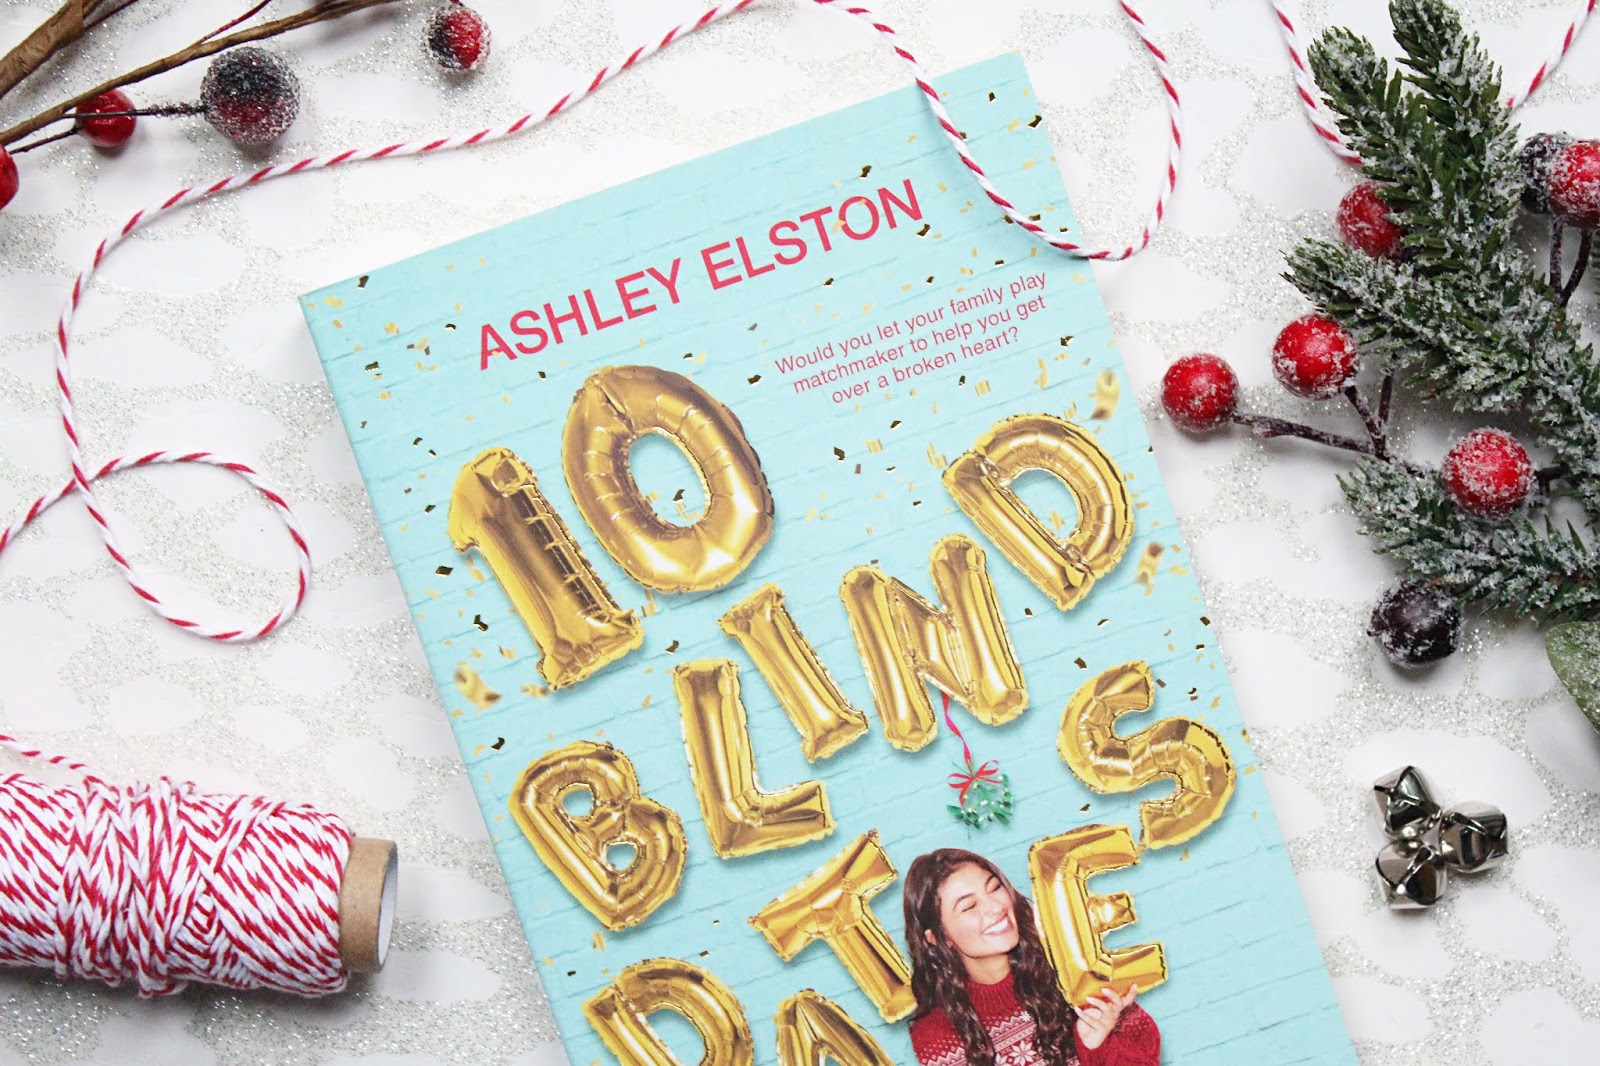 10 Blind Dates - Ashley Elston | Spoiler Free Book Review